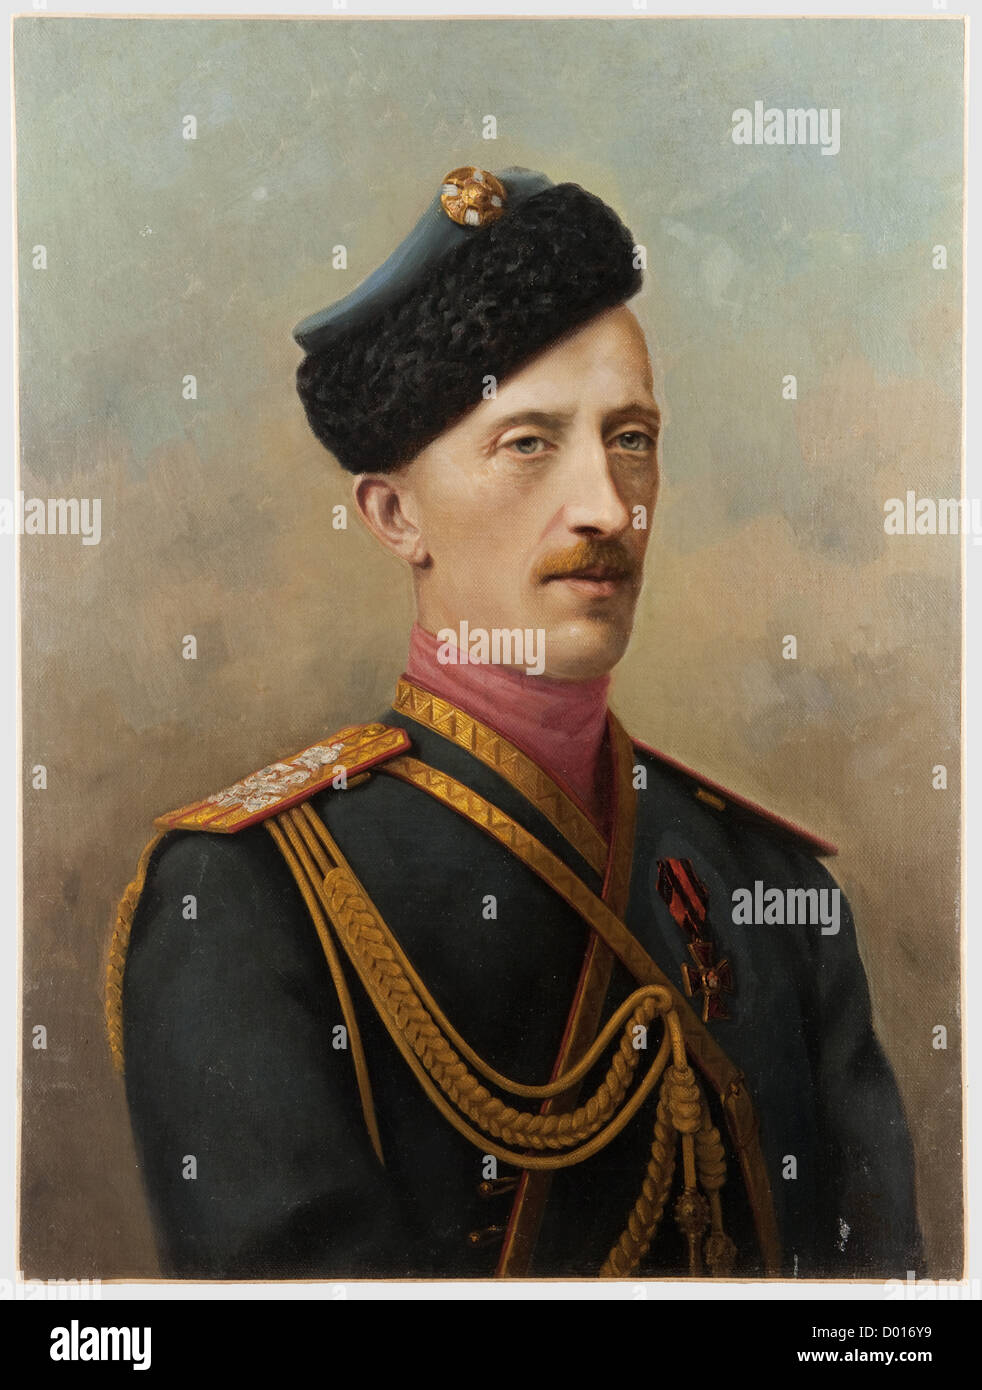 Duke Peter Alexandrovich Oldensburgsky (1868 - 1924) - a portrait painting, Russia, circa 1910. Oil on canvas, relined. - Stock Image